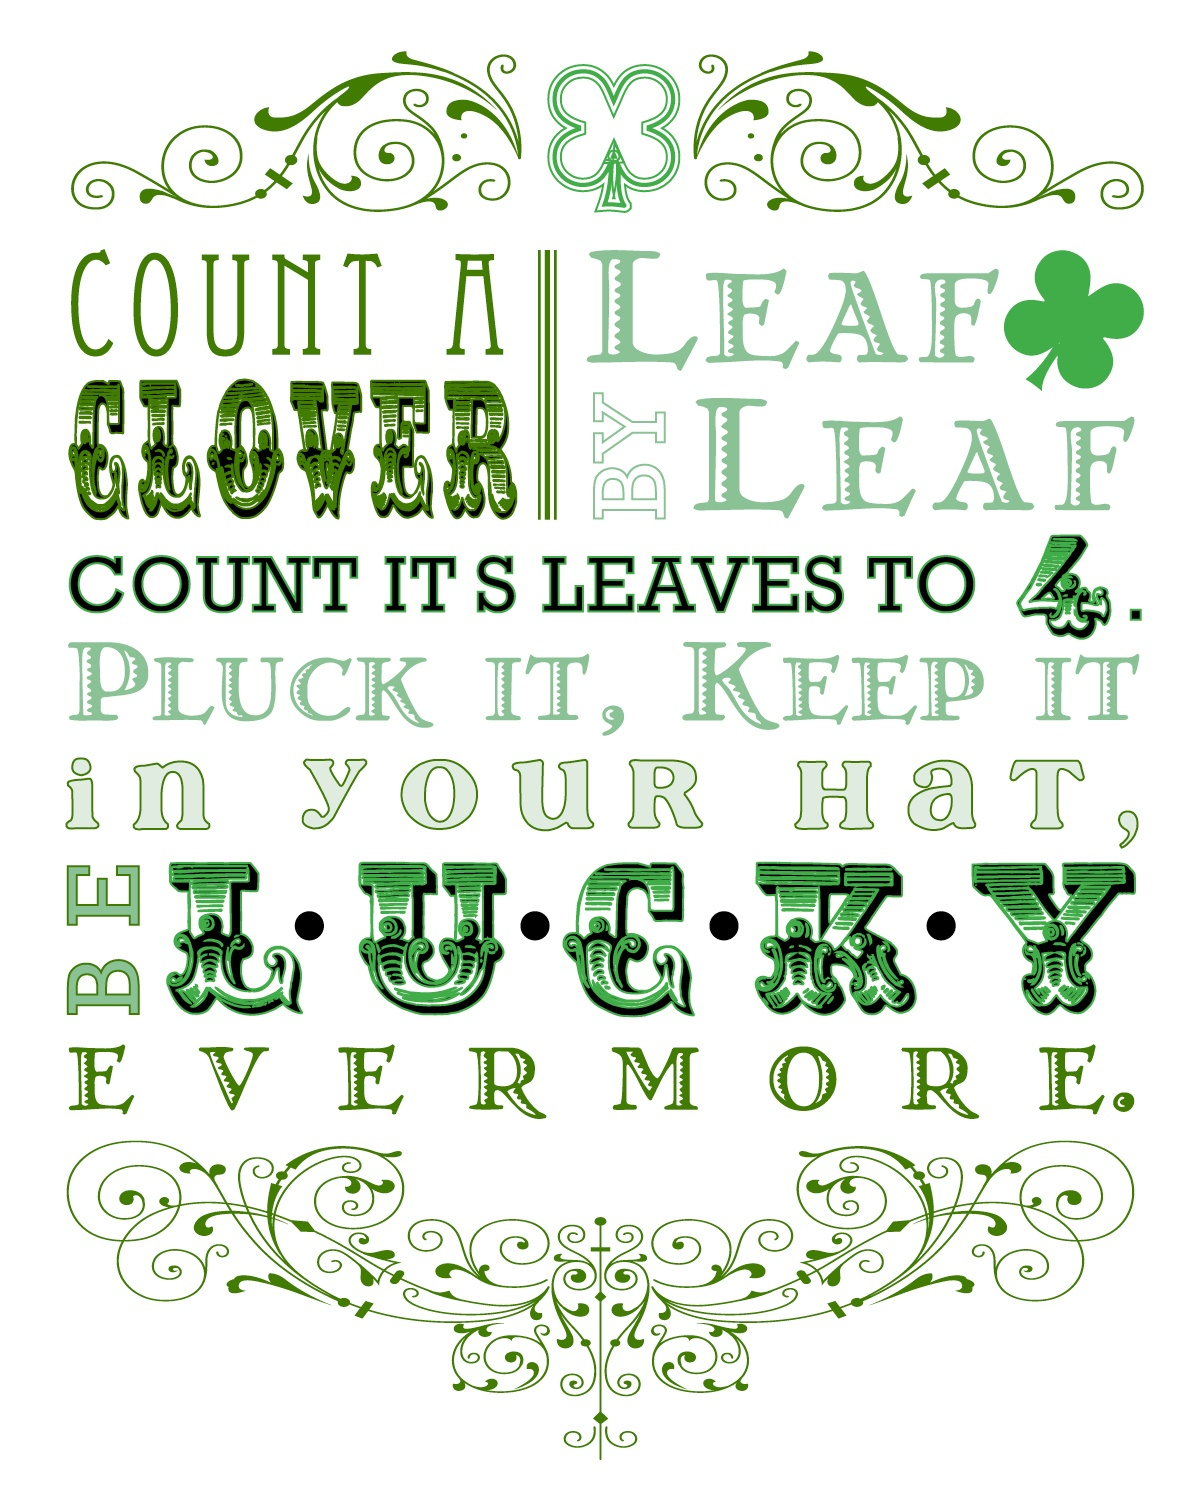 Free St Patrick Day Printables And Subway Art - Free St Patrick's Day Subway Art Printables